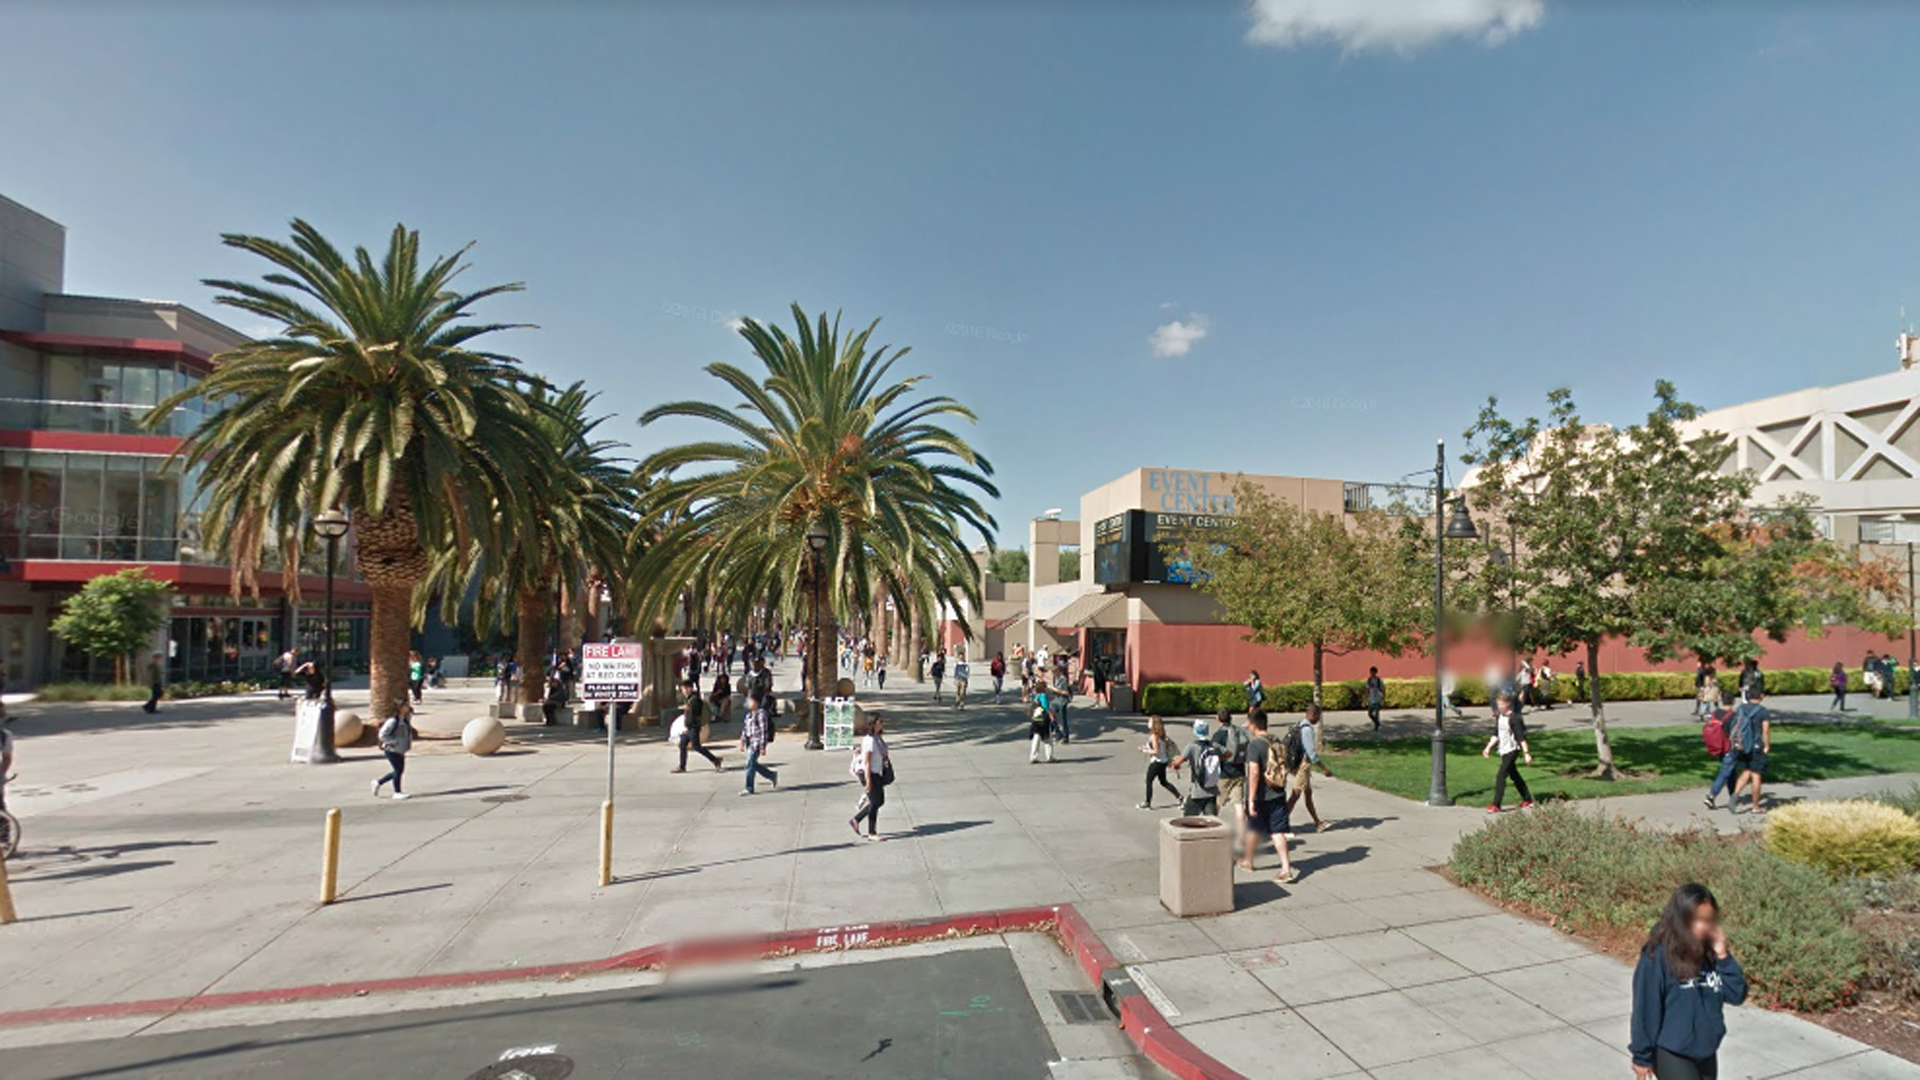 The San Jose State University campus is seen in this Google Maps image.